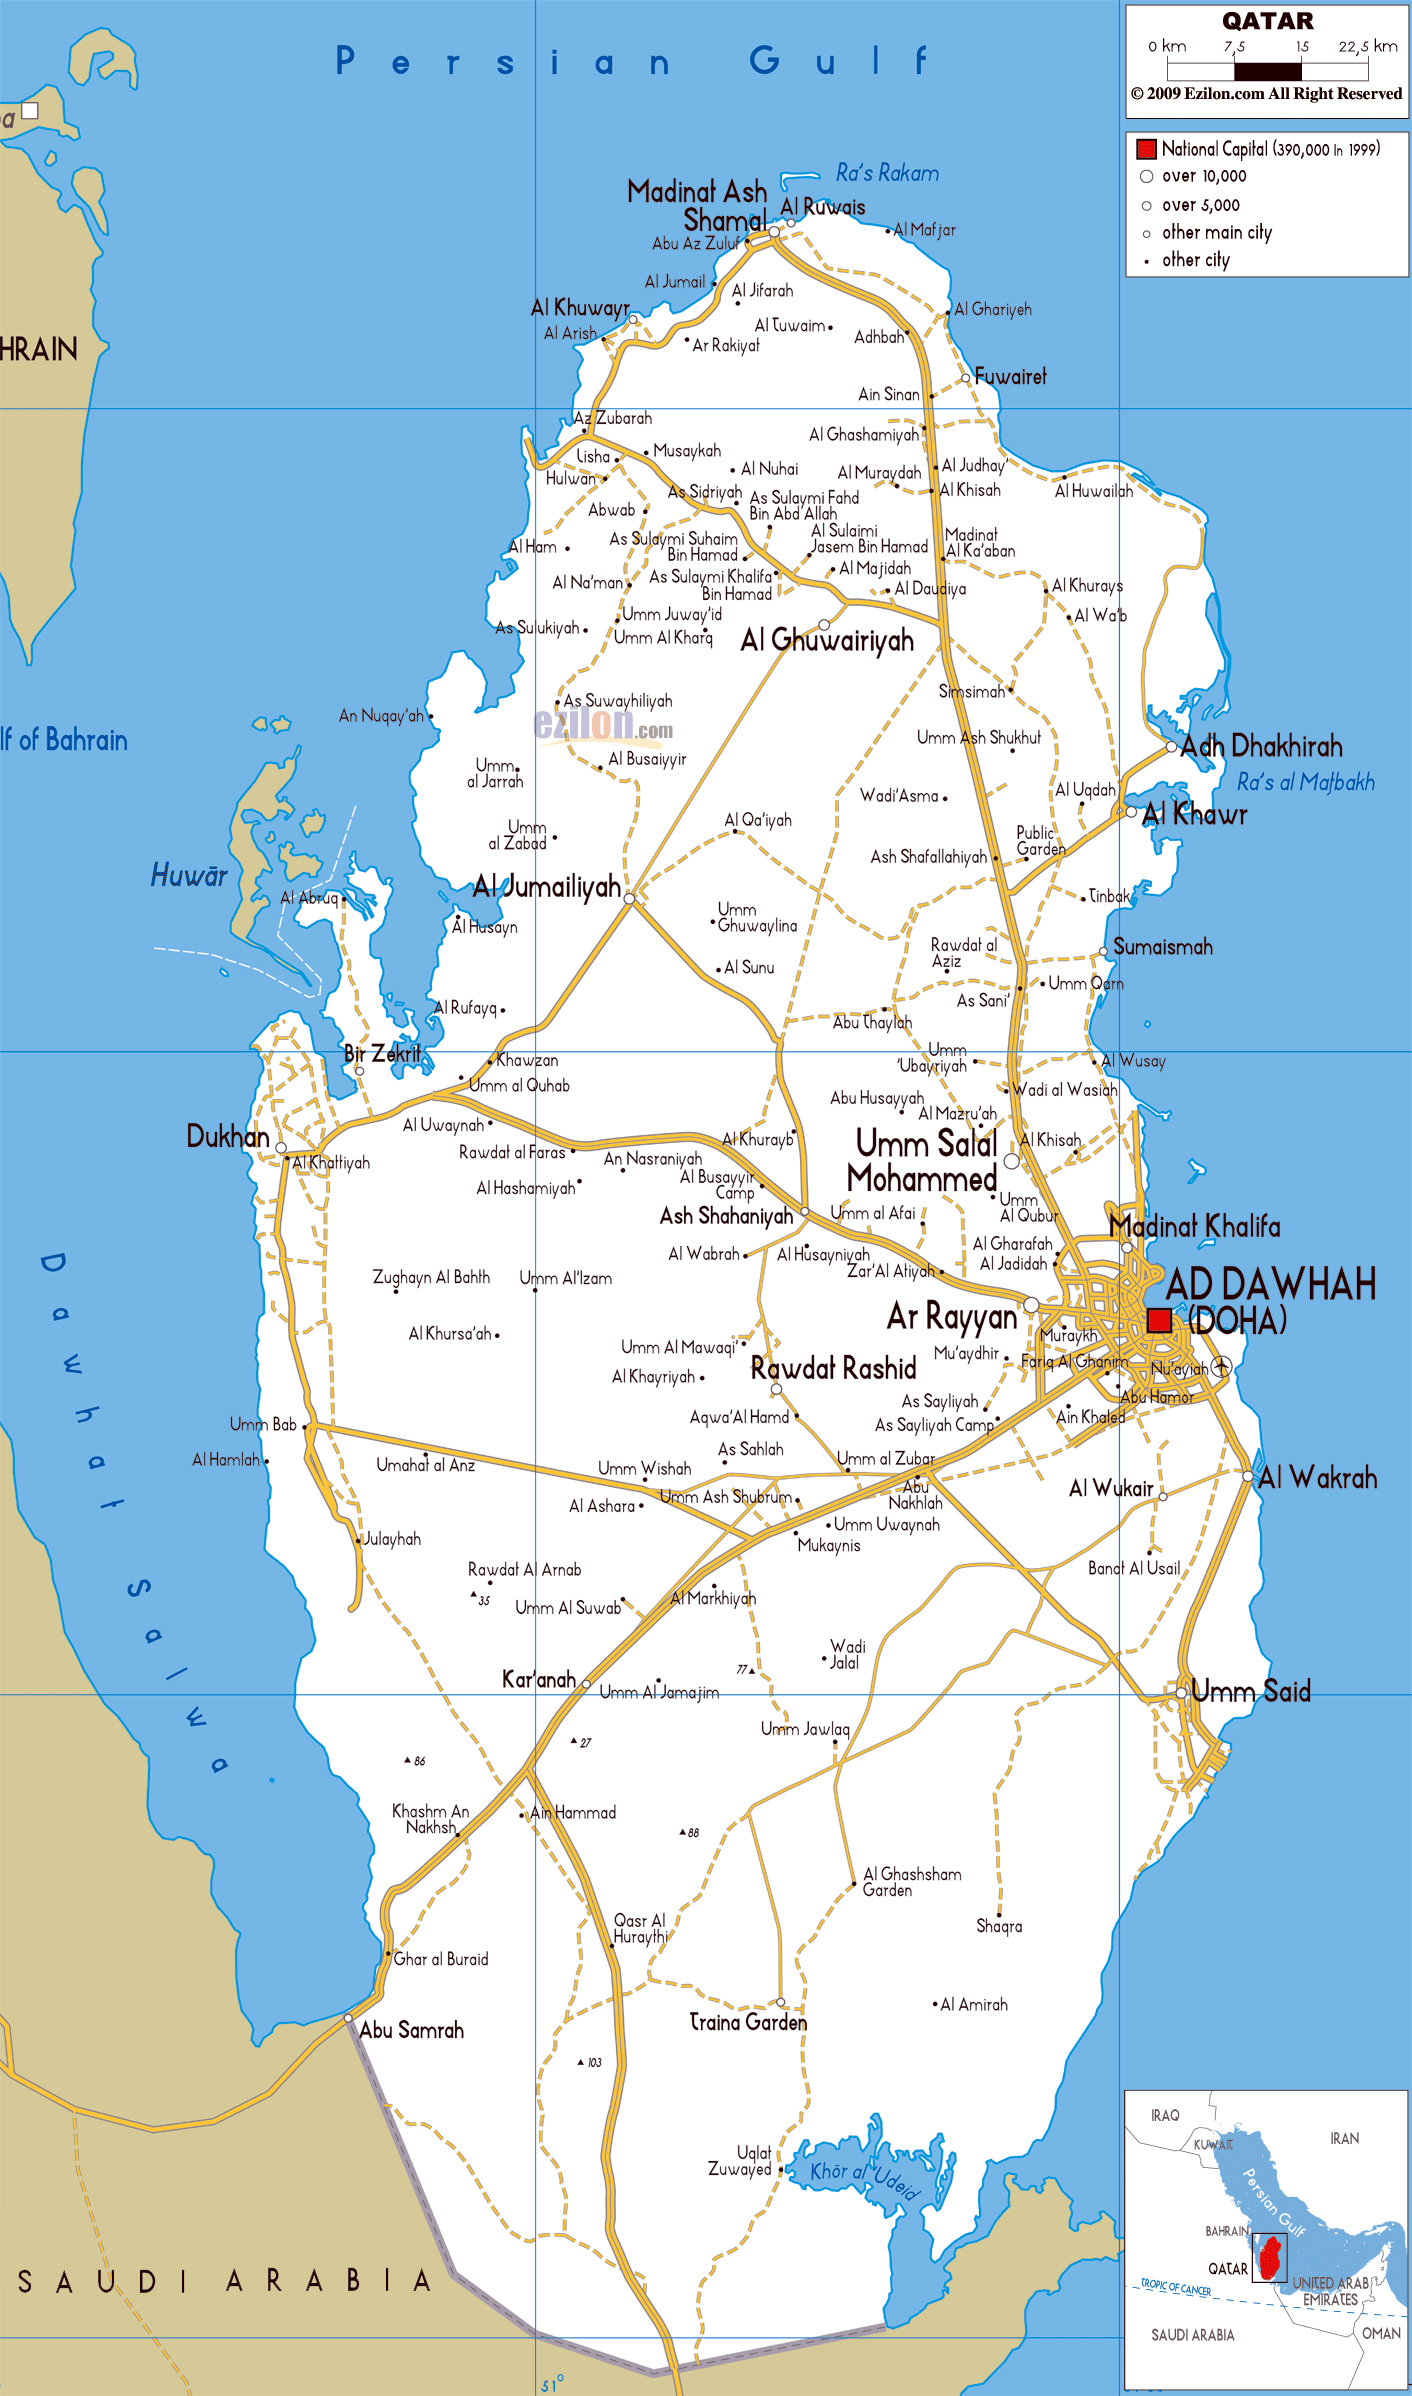 Large road map of Qatar with cities and airports | Qatar ... on world map uae, world map in bangladesh, world map in norway, world map in chile, world map in nigeria, world map in china, world map kuwait, world map in arabic, world map in sri lanka, world map iraq, world map in france, world map in austria, world map jordan, world map in russia, world map in england, world map bahrain, world map in vietnam, world map doha, world map in english, world map in french,